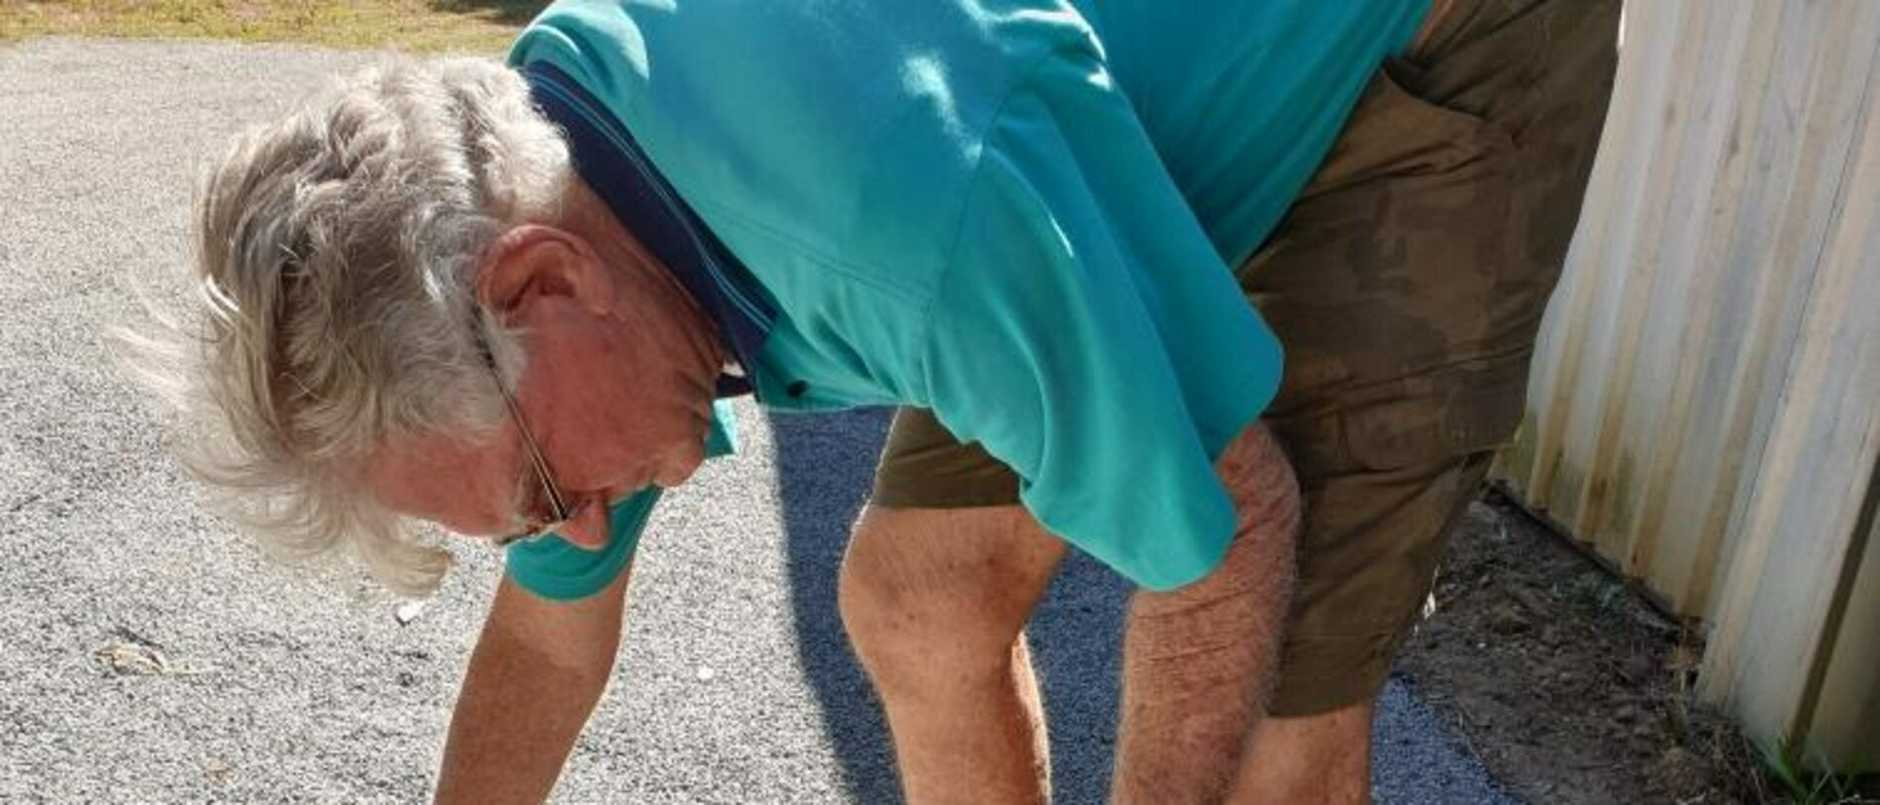 It's a well-known driveway scam usually directed at elderly homeowners but this time the bitumen bandits lost out -  here's why.